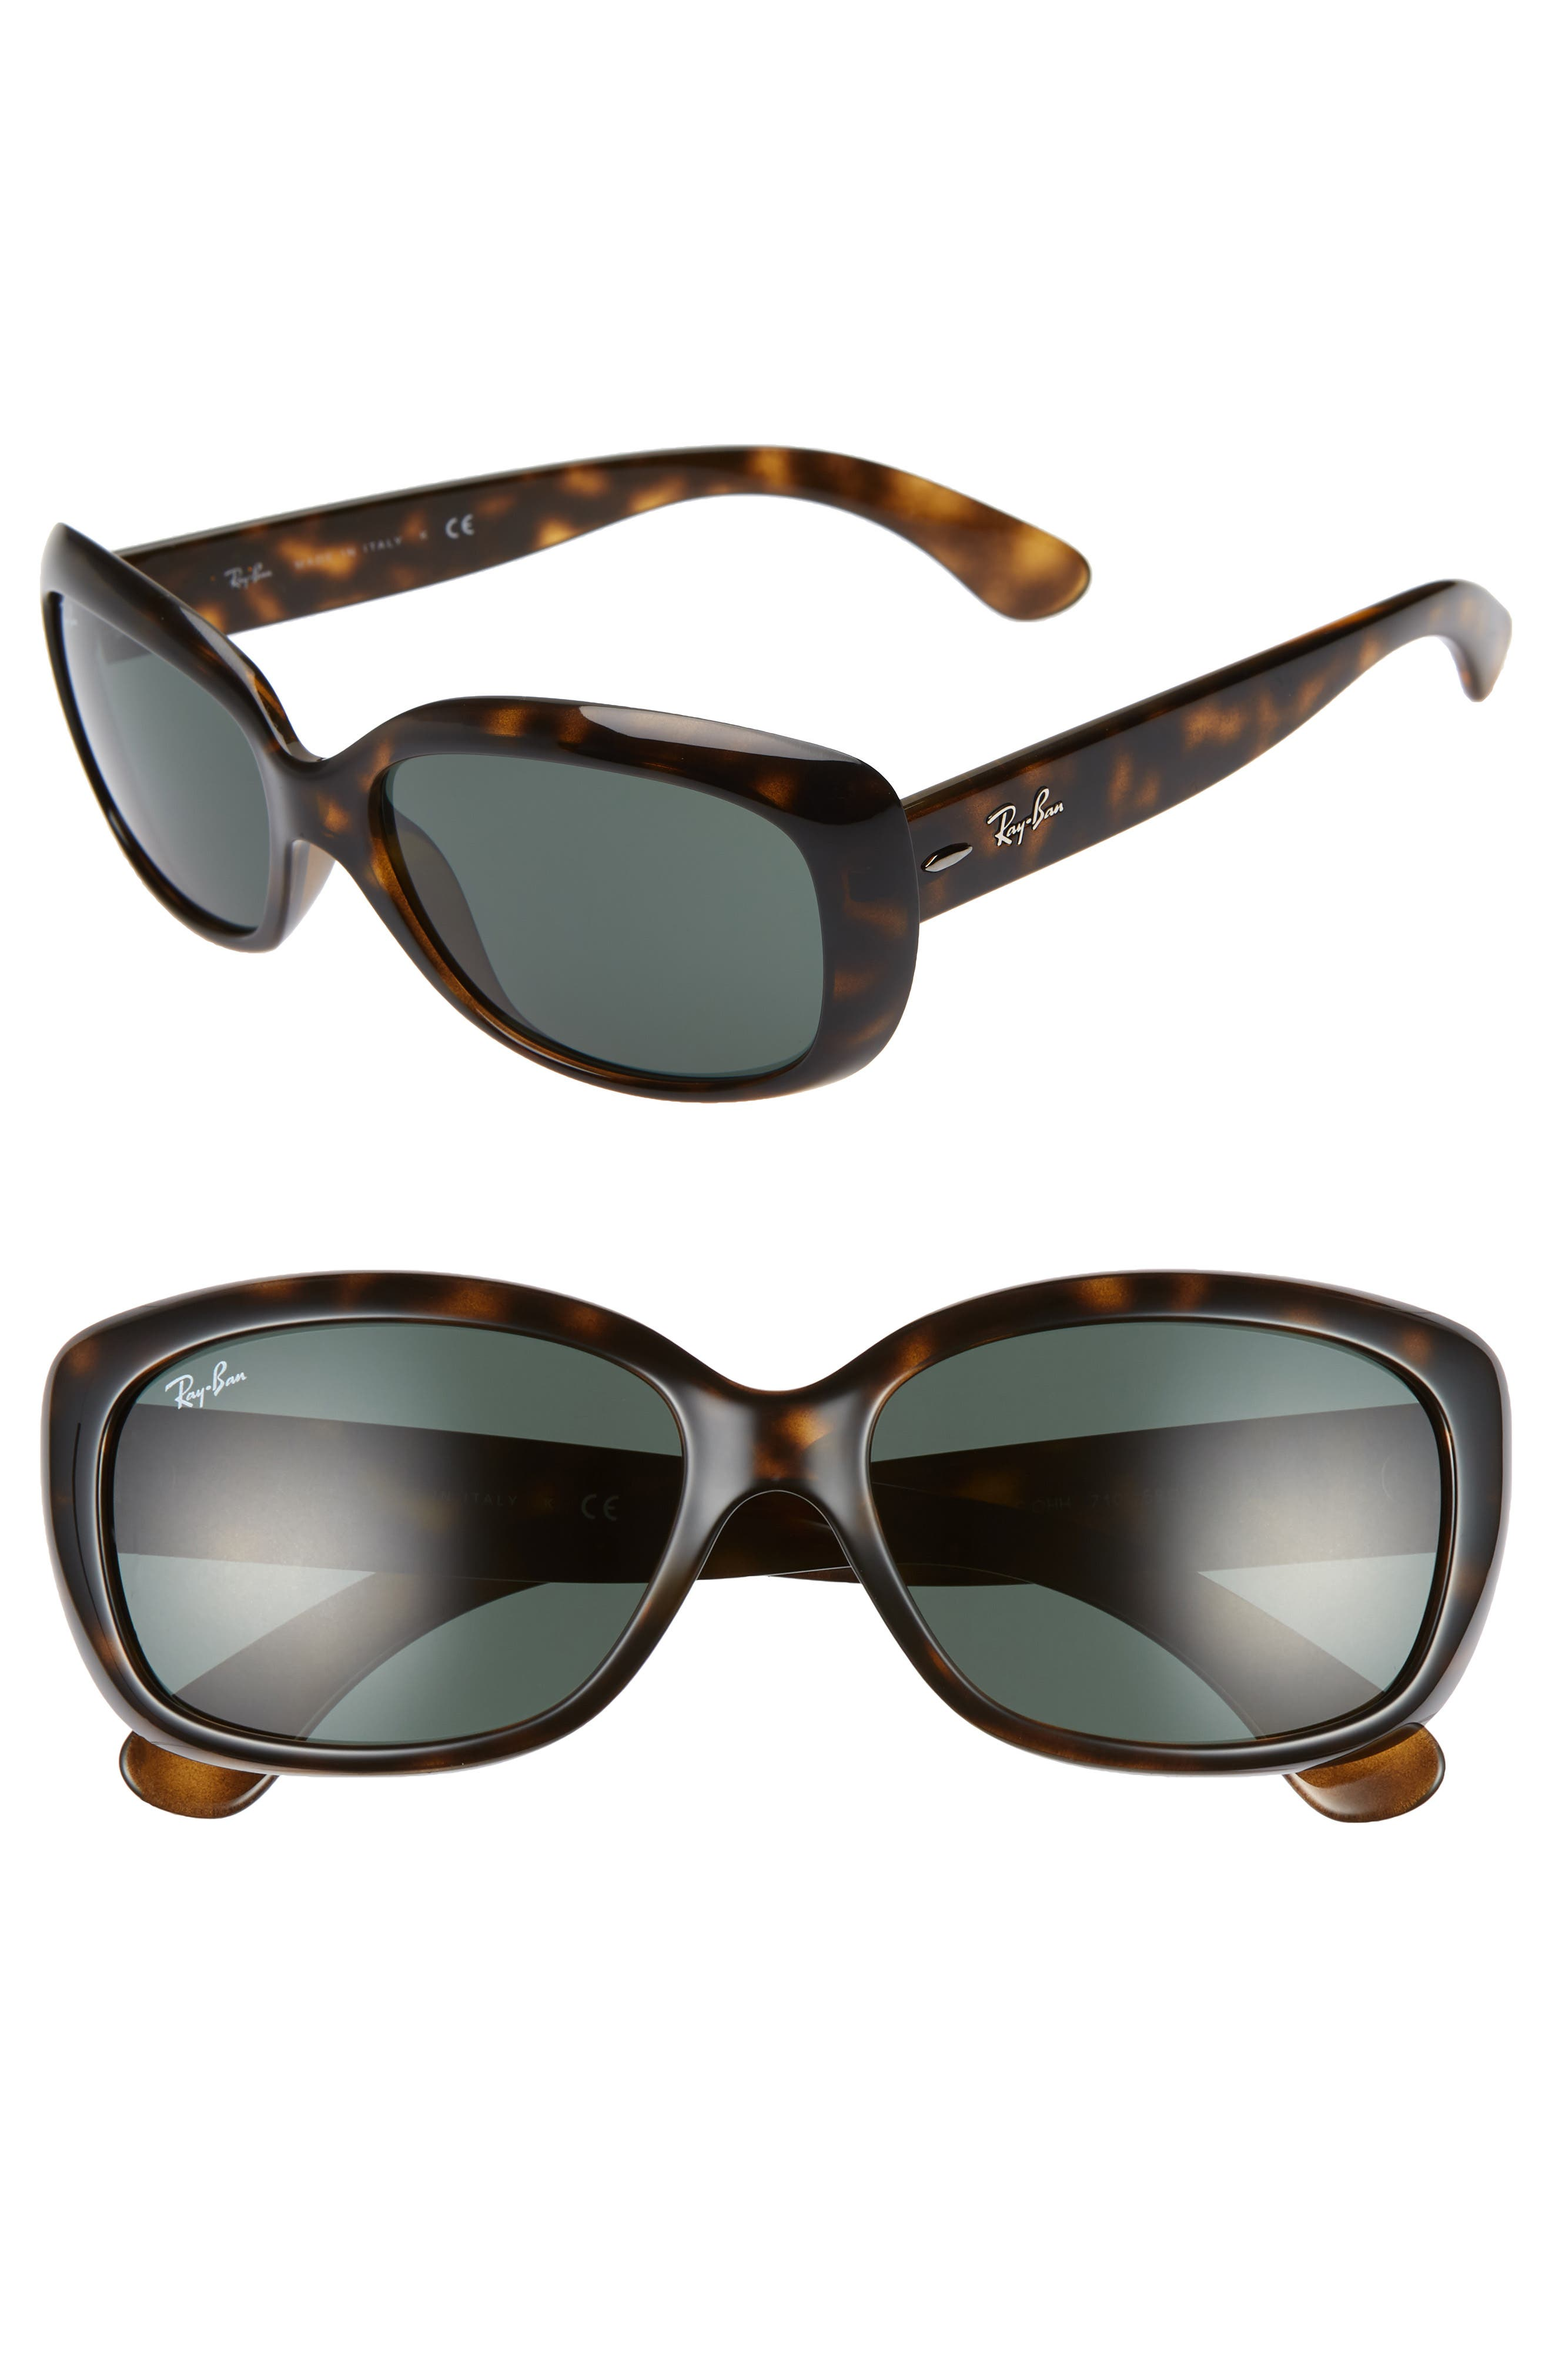 Ray-Ban Jackie Ohh 5m Cat Eye Sunglasses - Lite Havana/ Green Solid